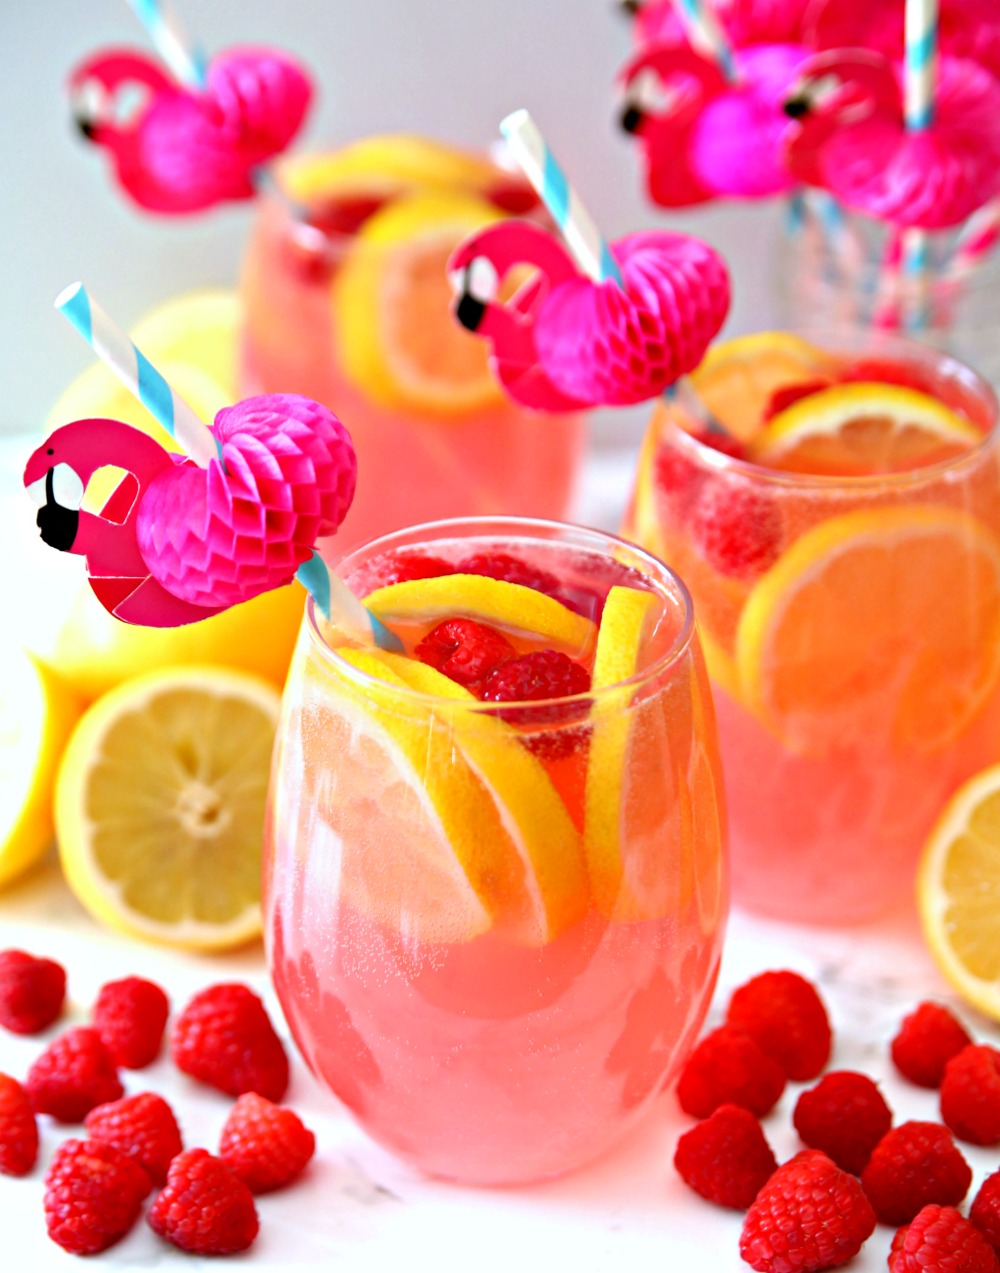 Pink Moscato Lemonade Cocktail Recipe in wine glass with frozen raspberries and lemon slices